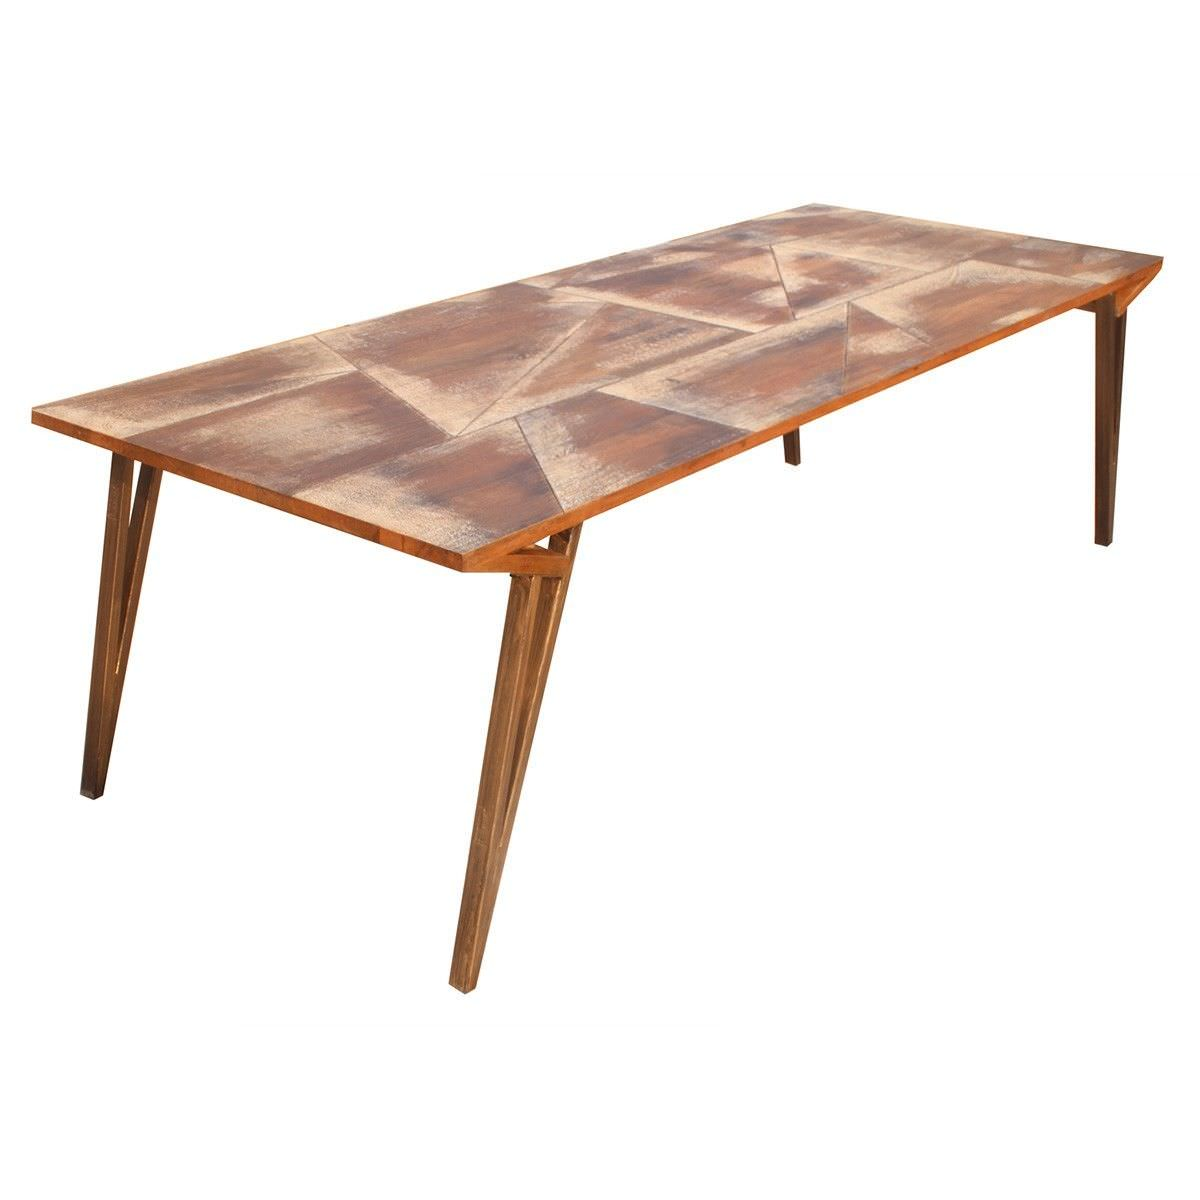 Thiers Mango Wood Dining Table, 260cm